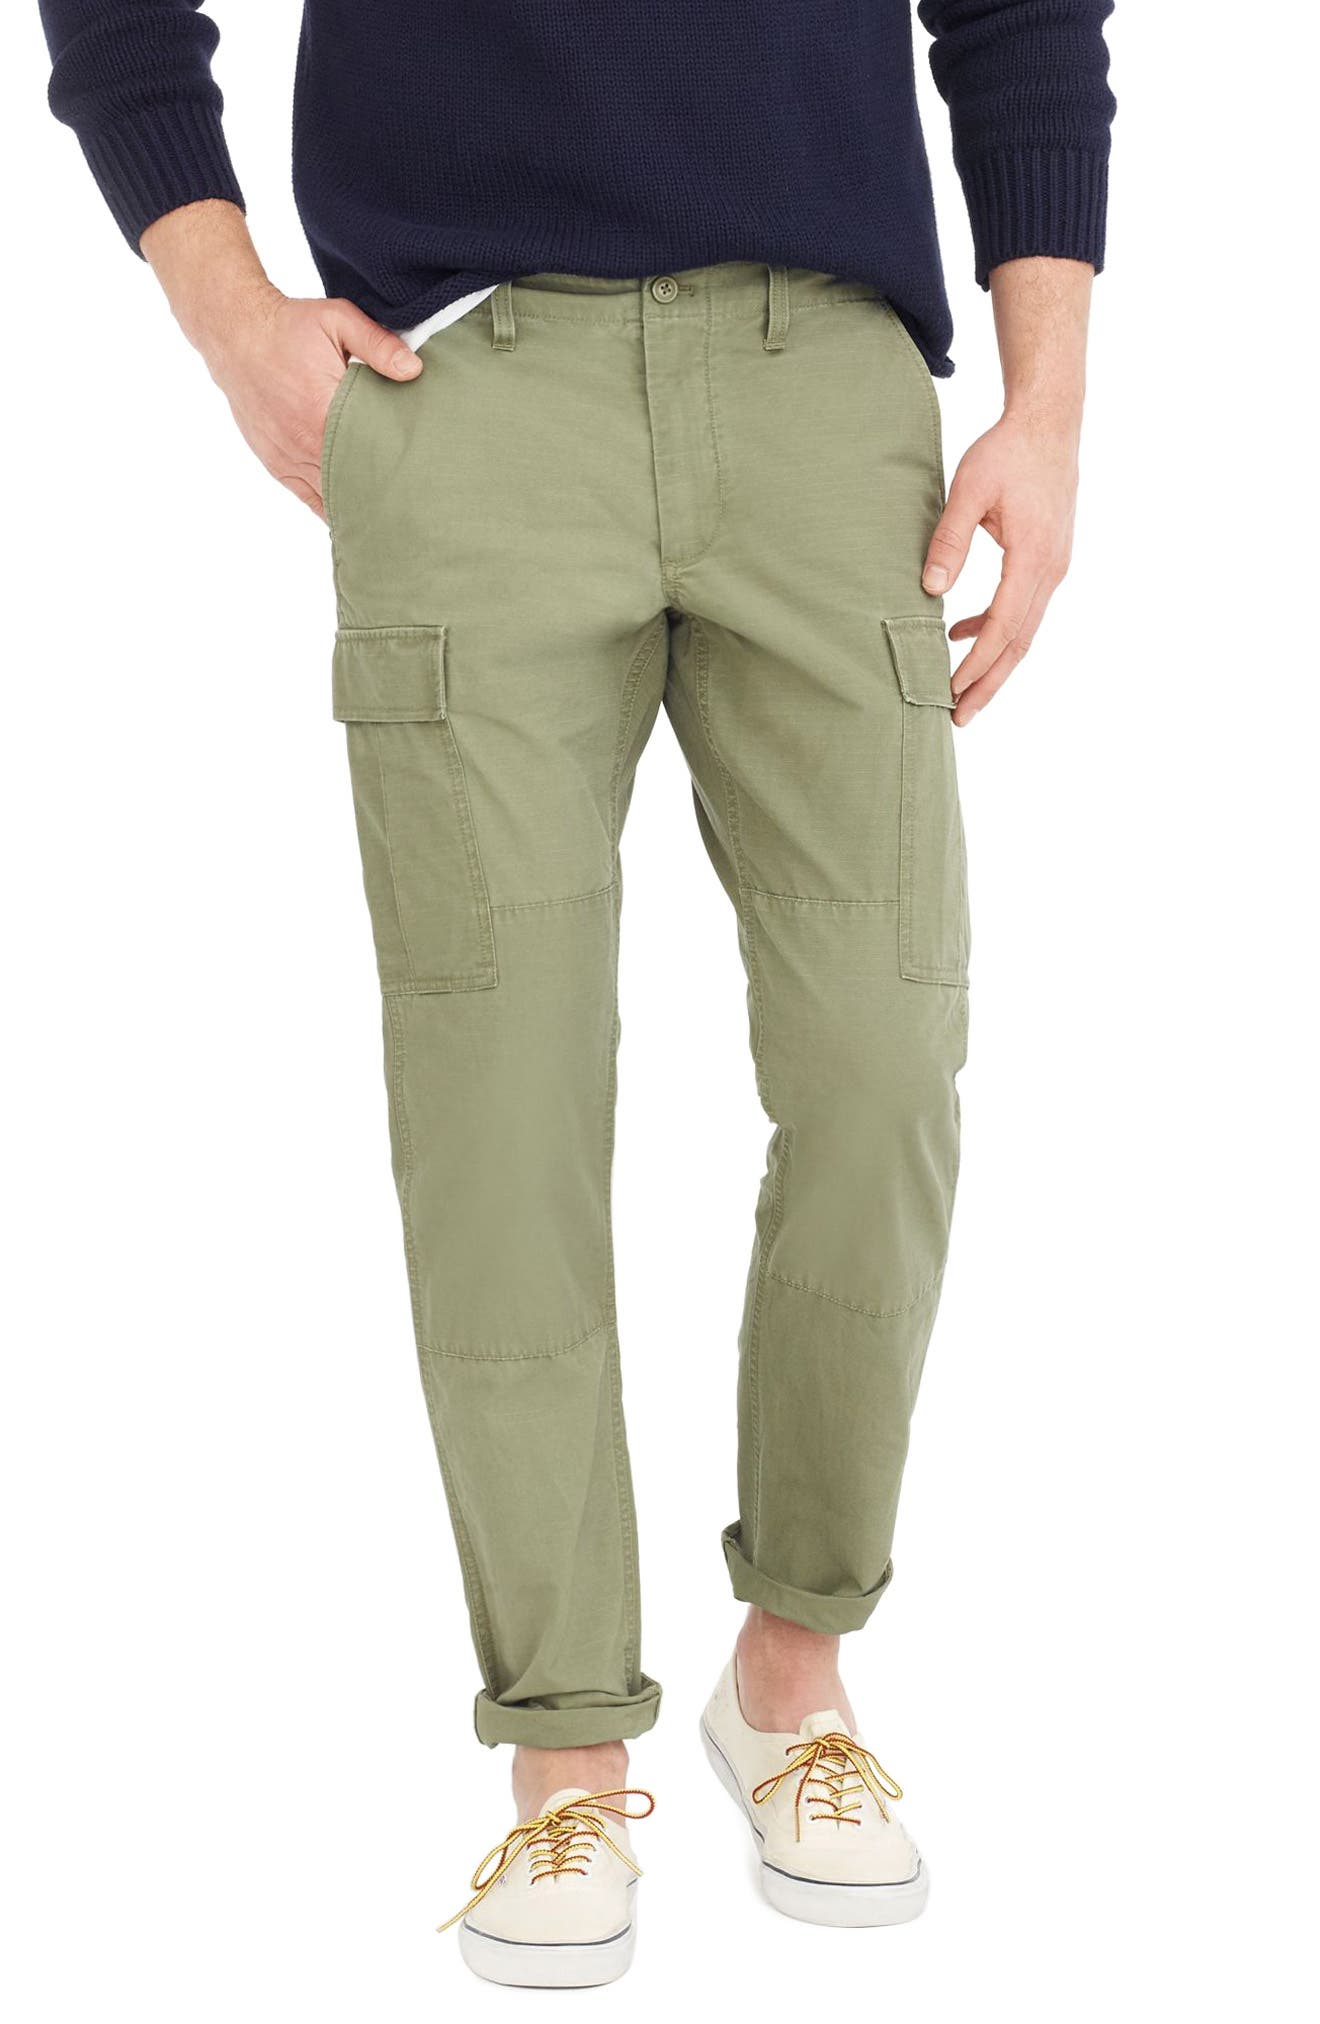 770 Straight Fit Ripstop Cargo Pants,                             Main thumbnail 1, color,                             300